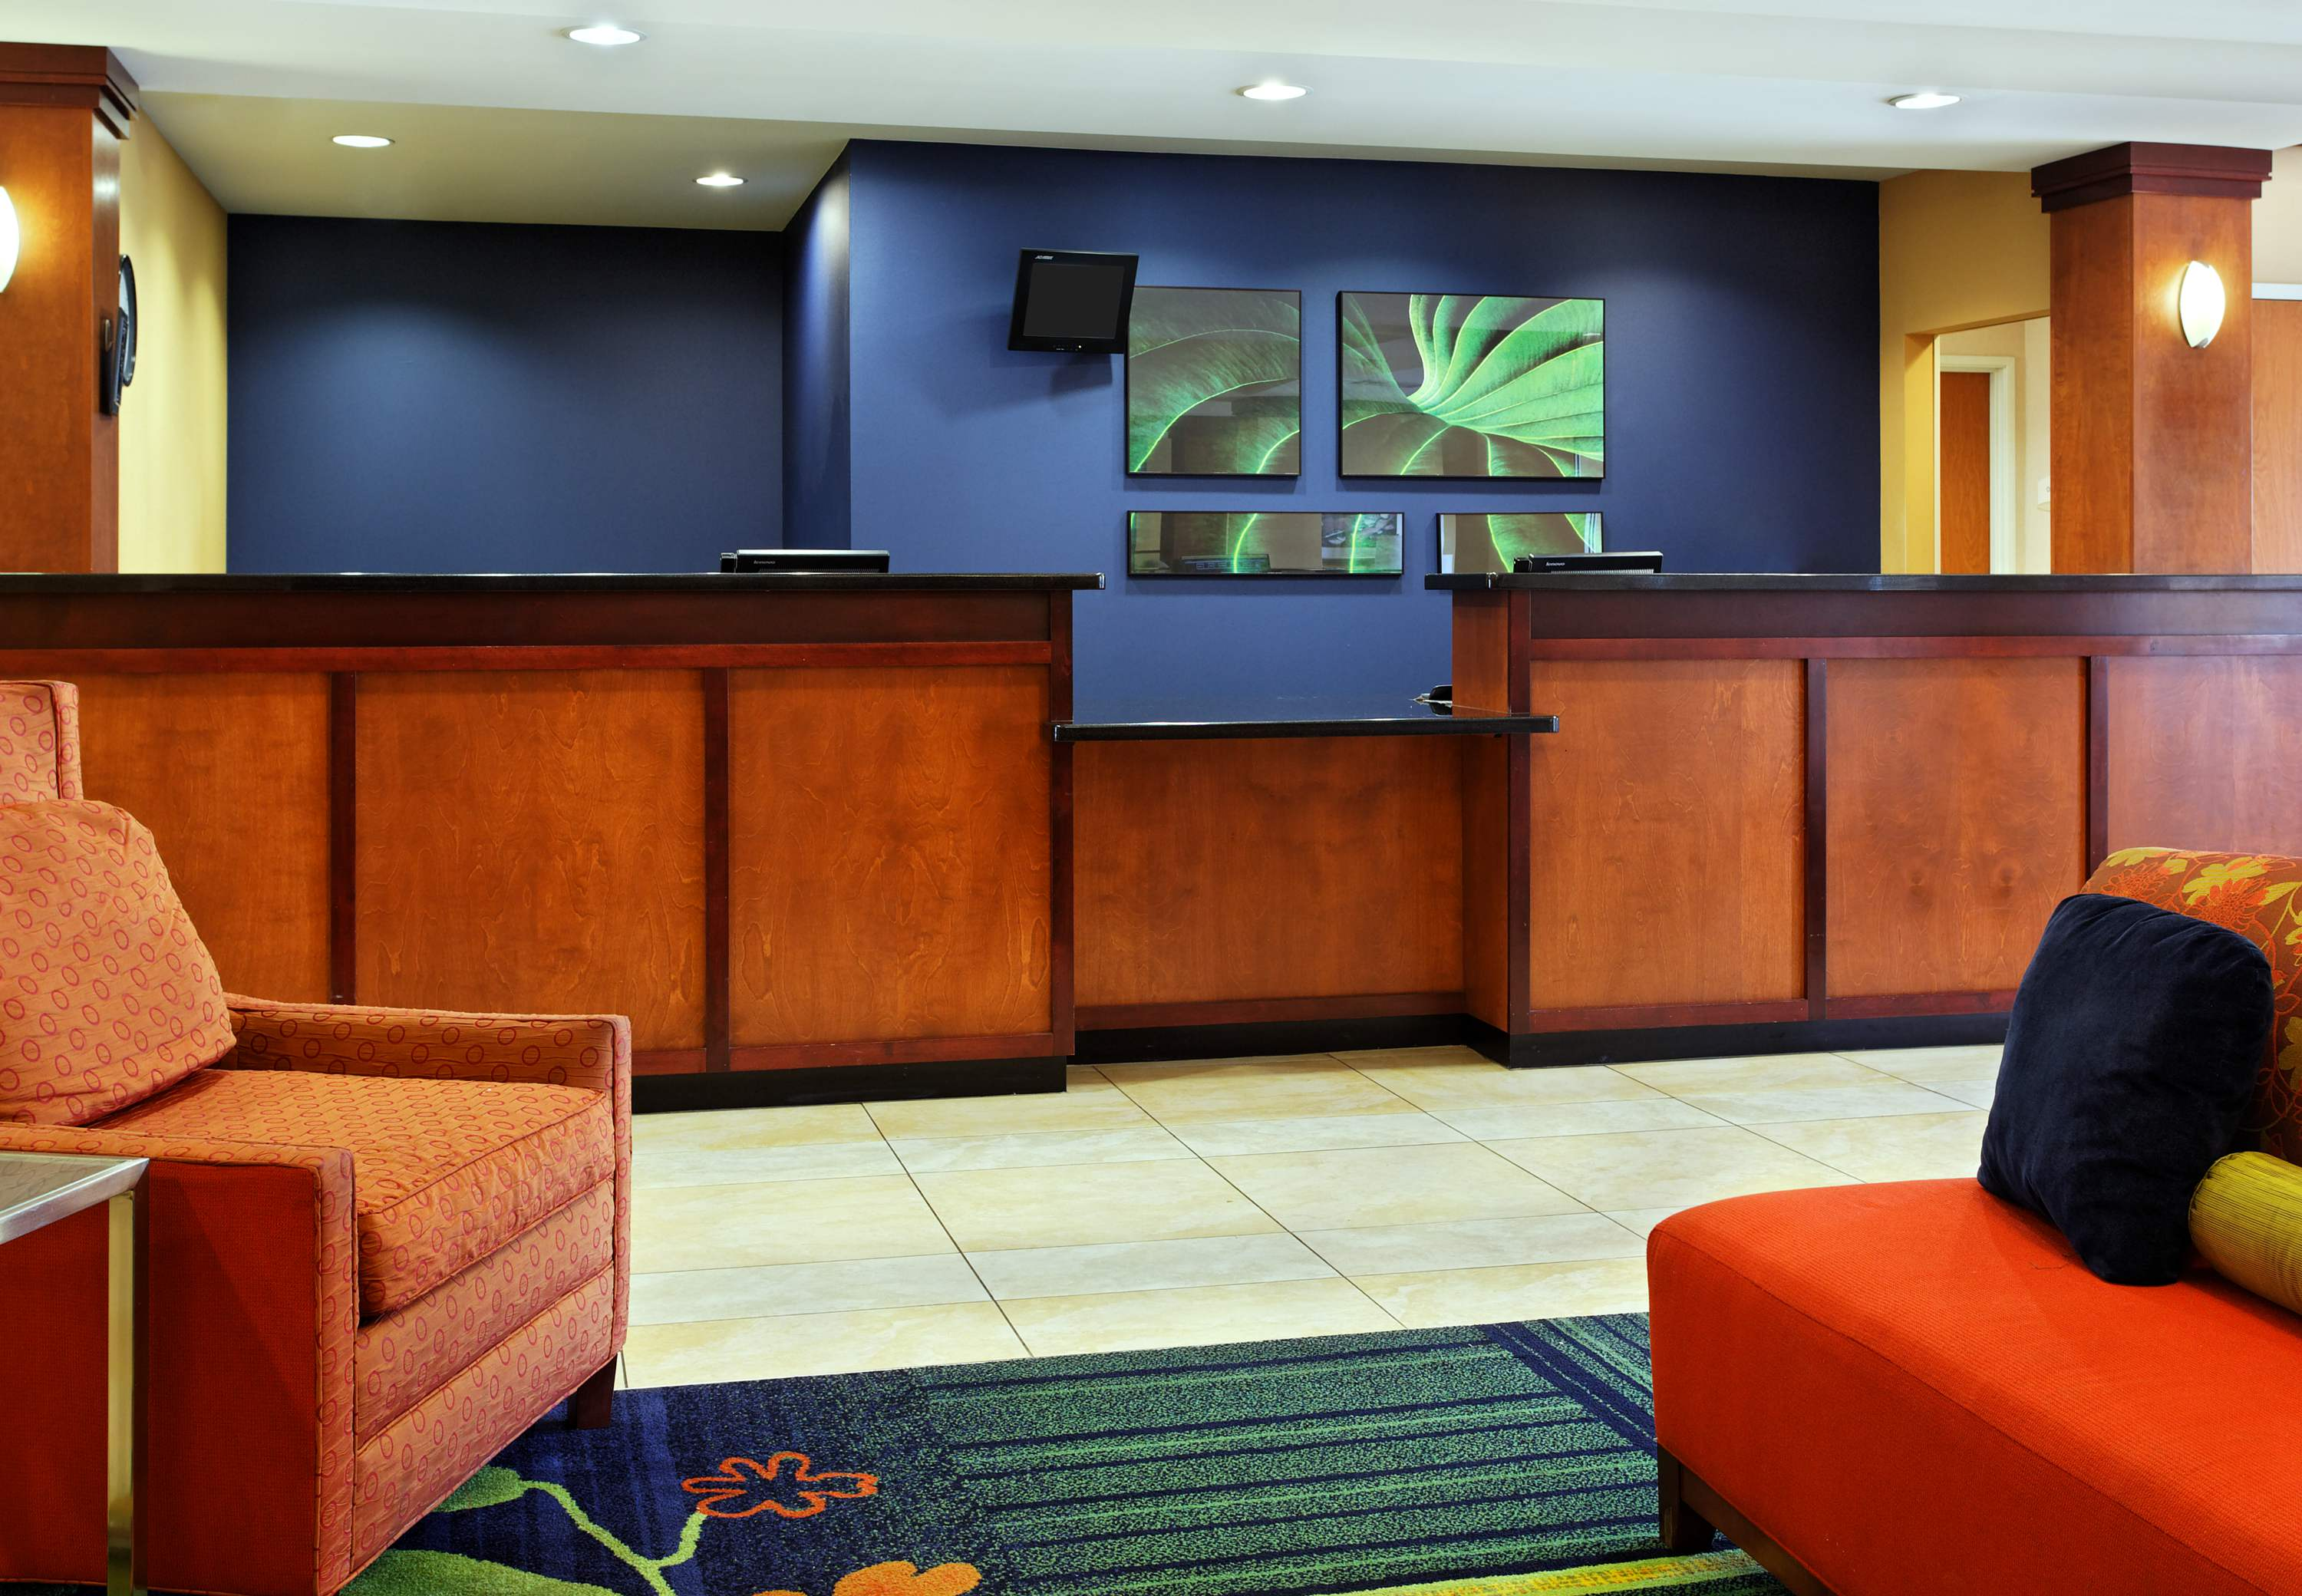 Fairfield Inn & Suites by Marriott Austin North/Parmer Lane image 15